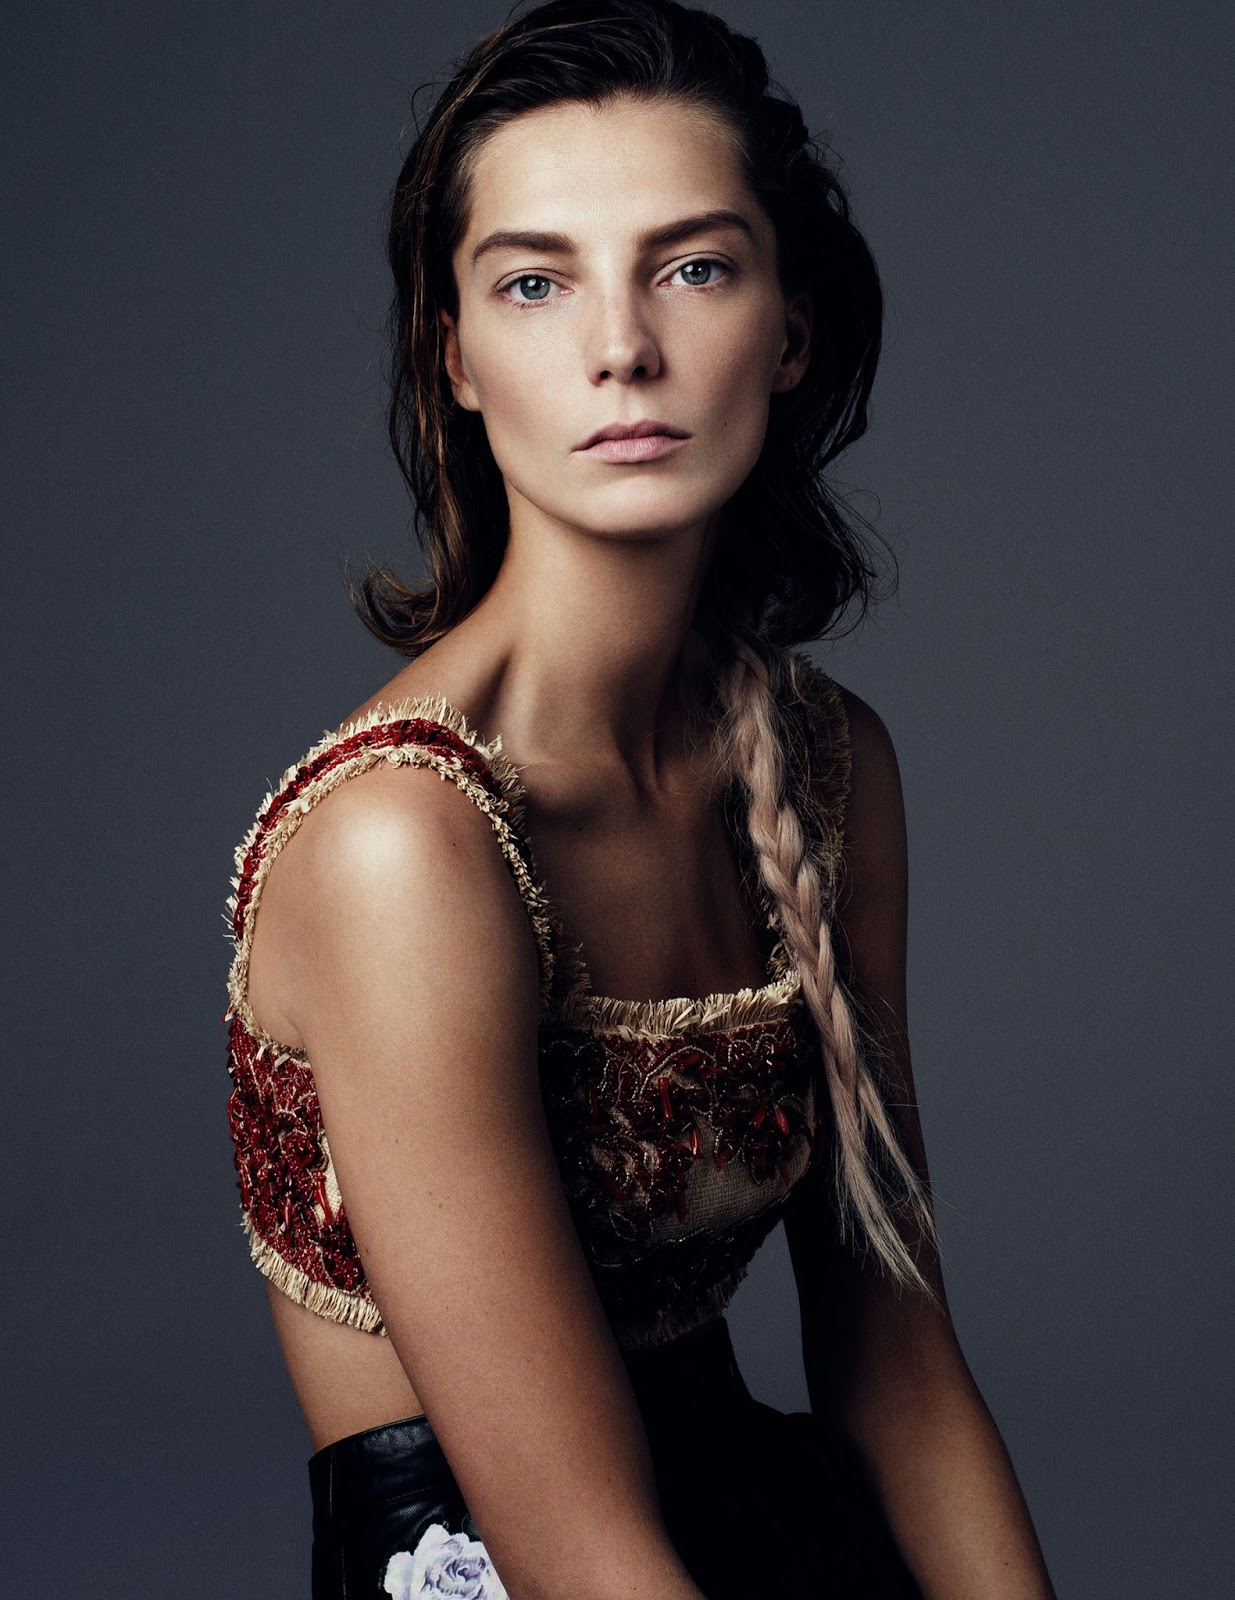 Daria Werbowy Shines On Fashion Canada S October 2013: Daria Werbowy By Steven Pan For Vogue Ukraine March 2013